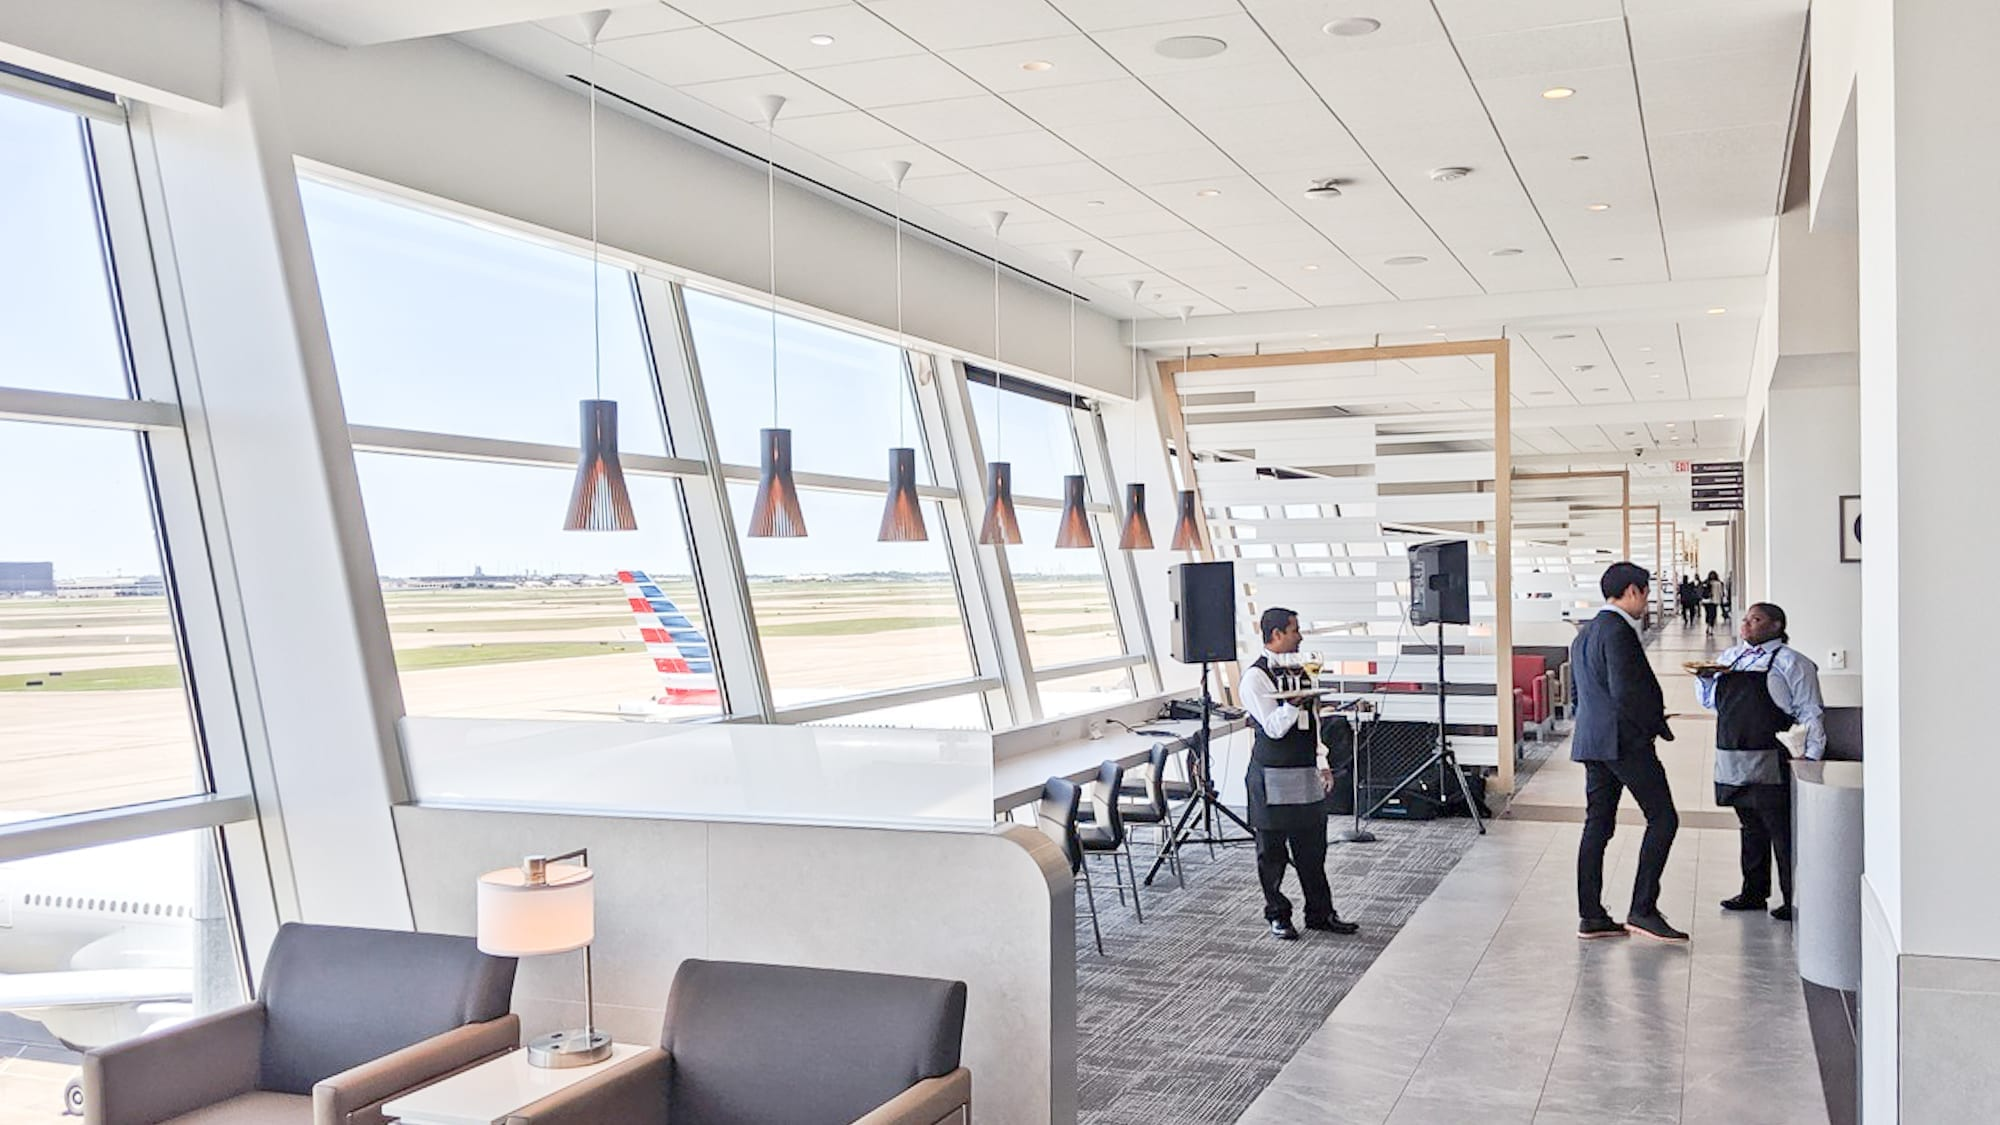 American Airlines VIP Club Lounge